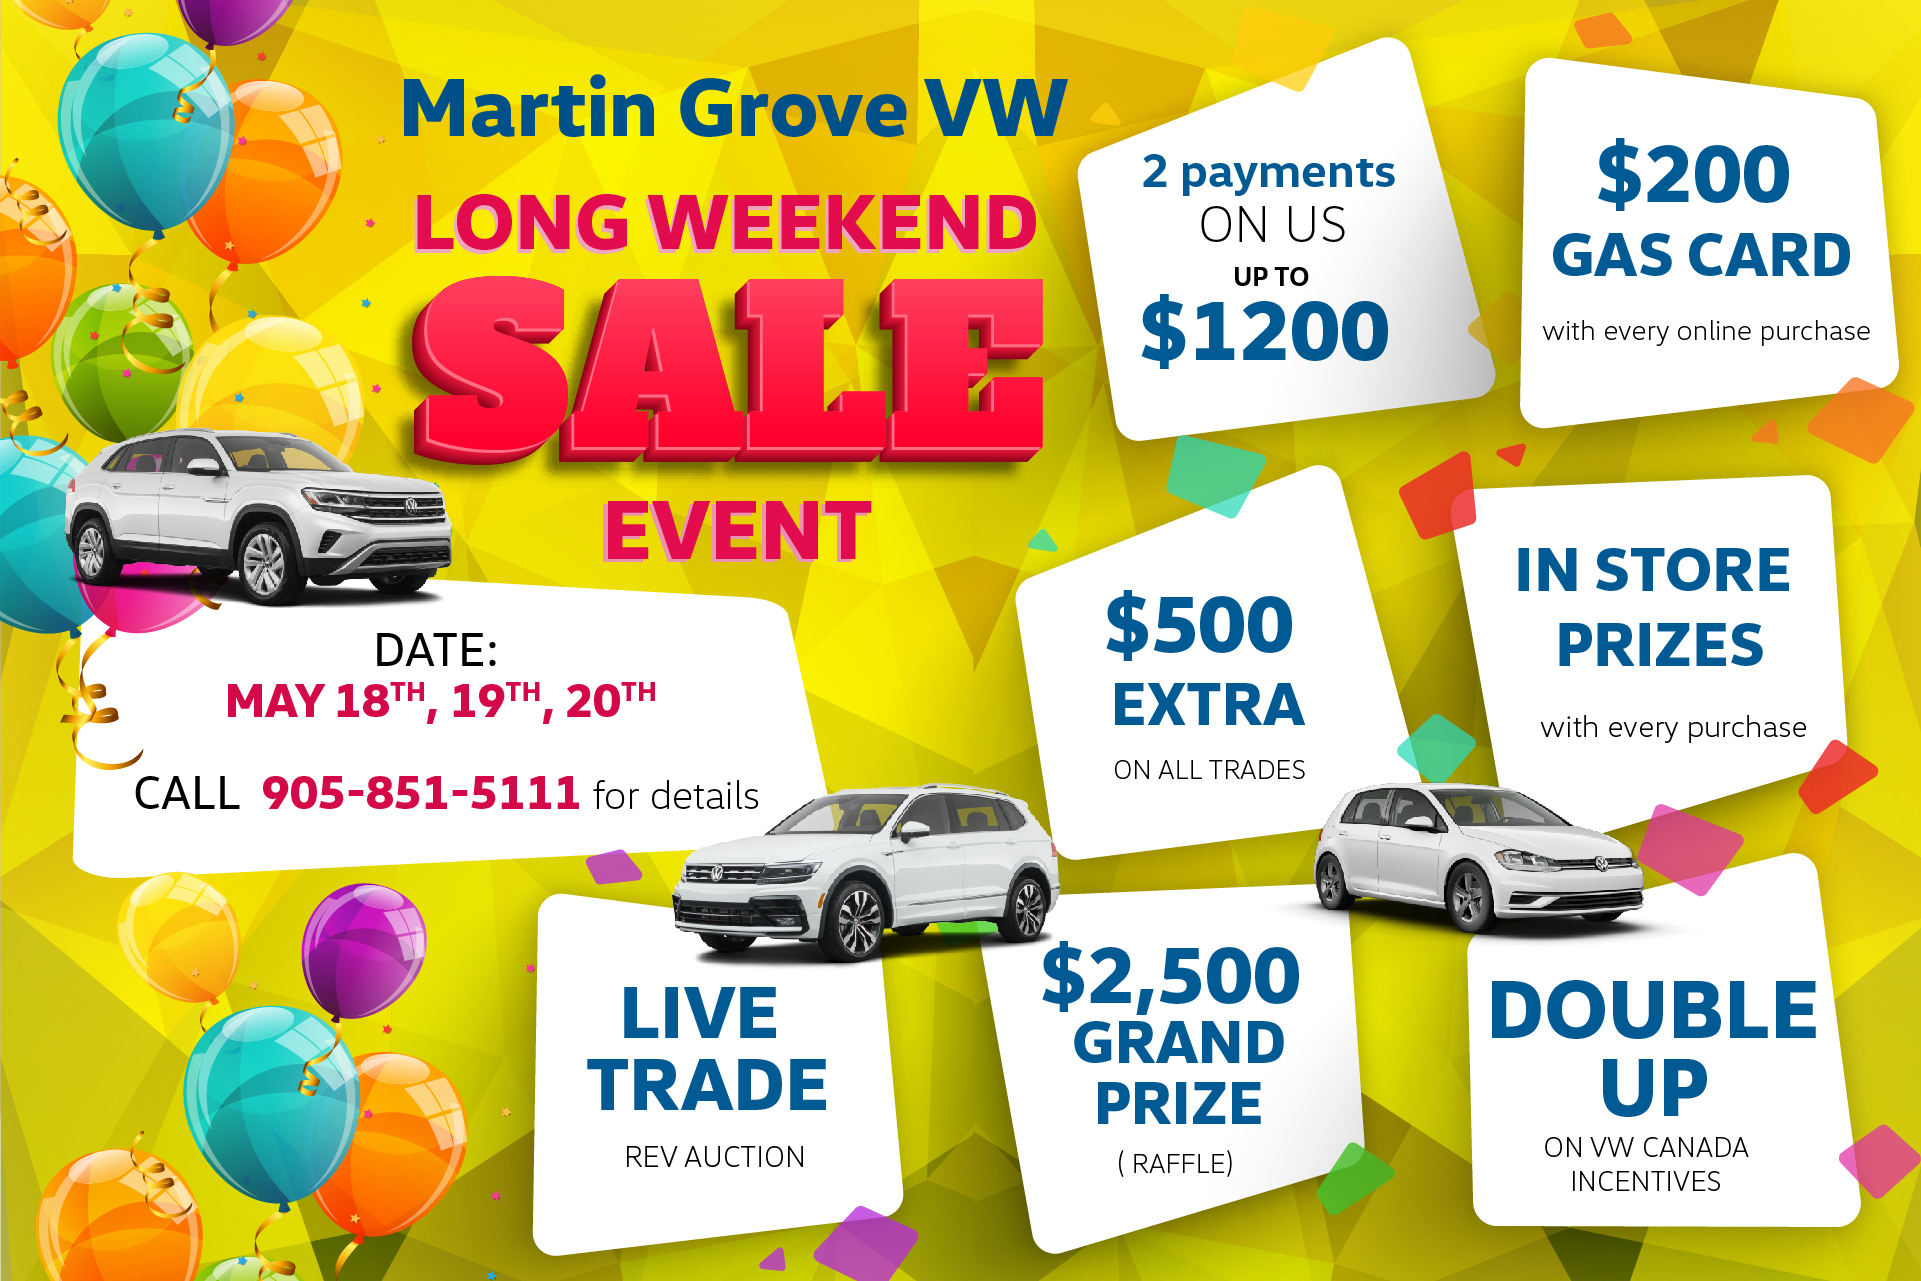 608a 21 Martin Grove Vw Private Sale Event 04